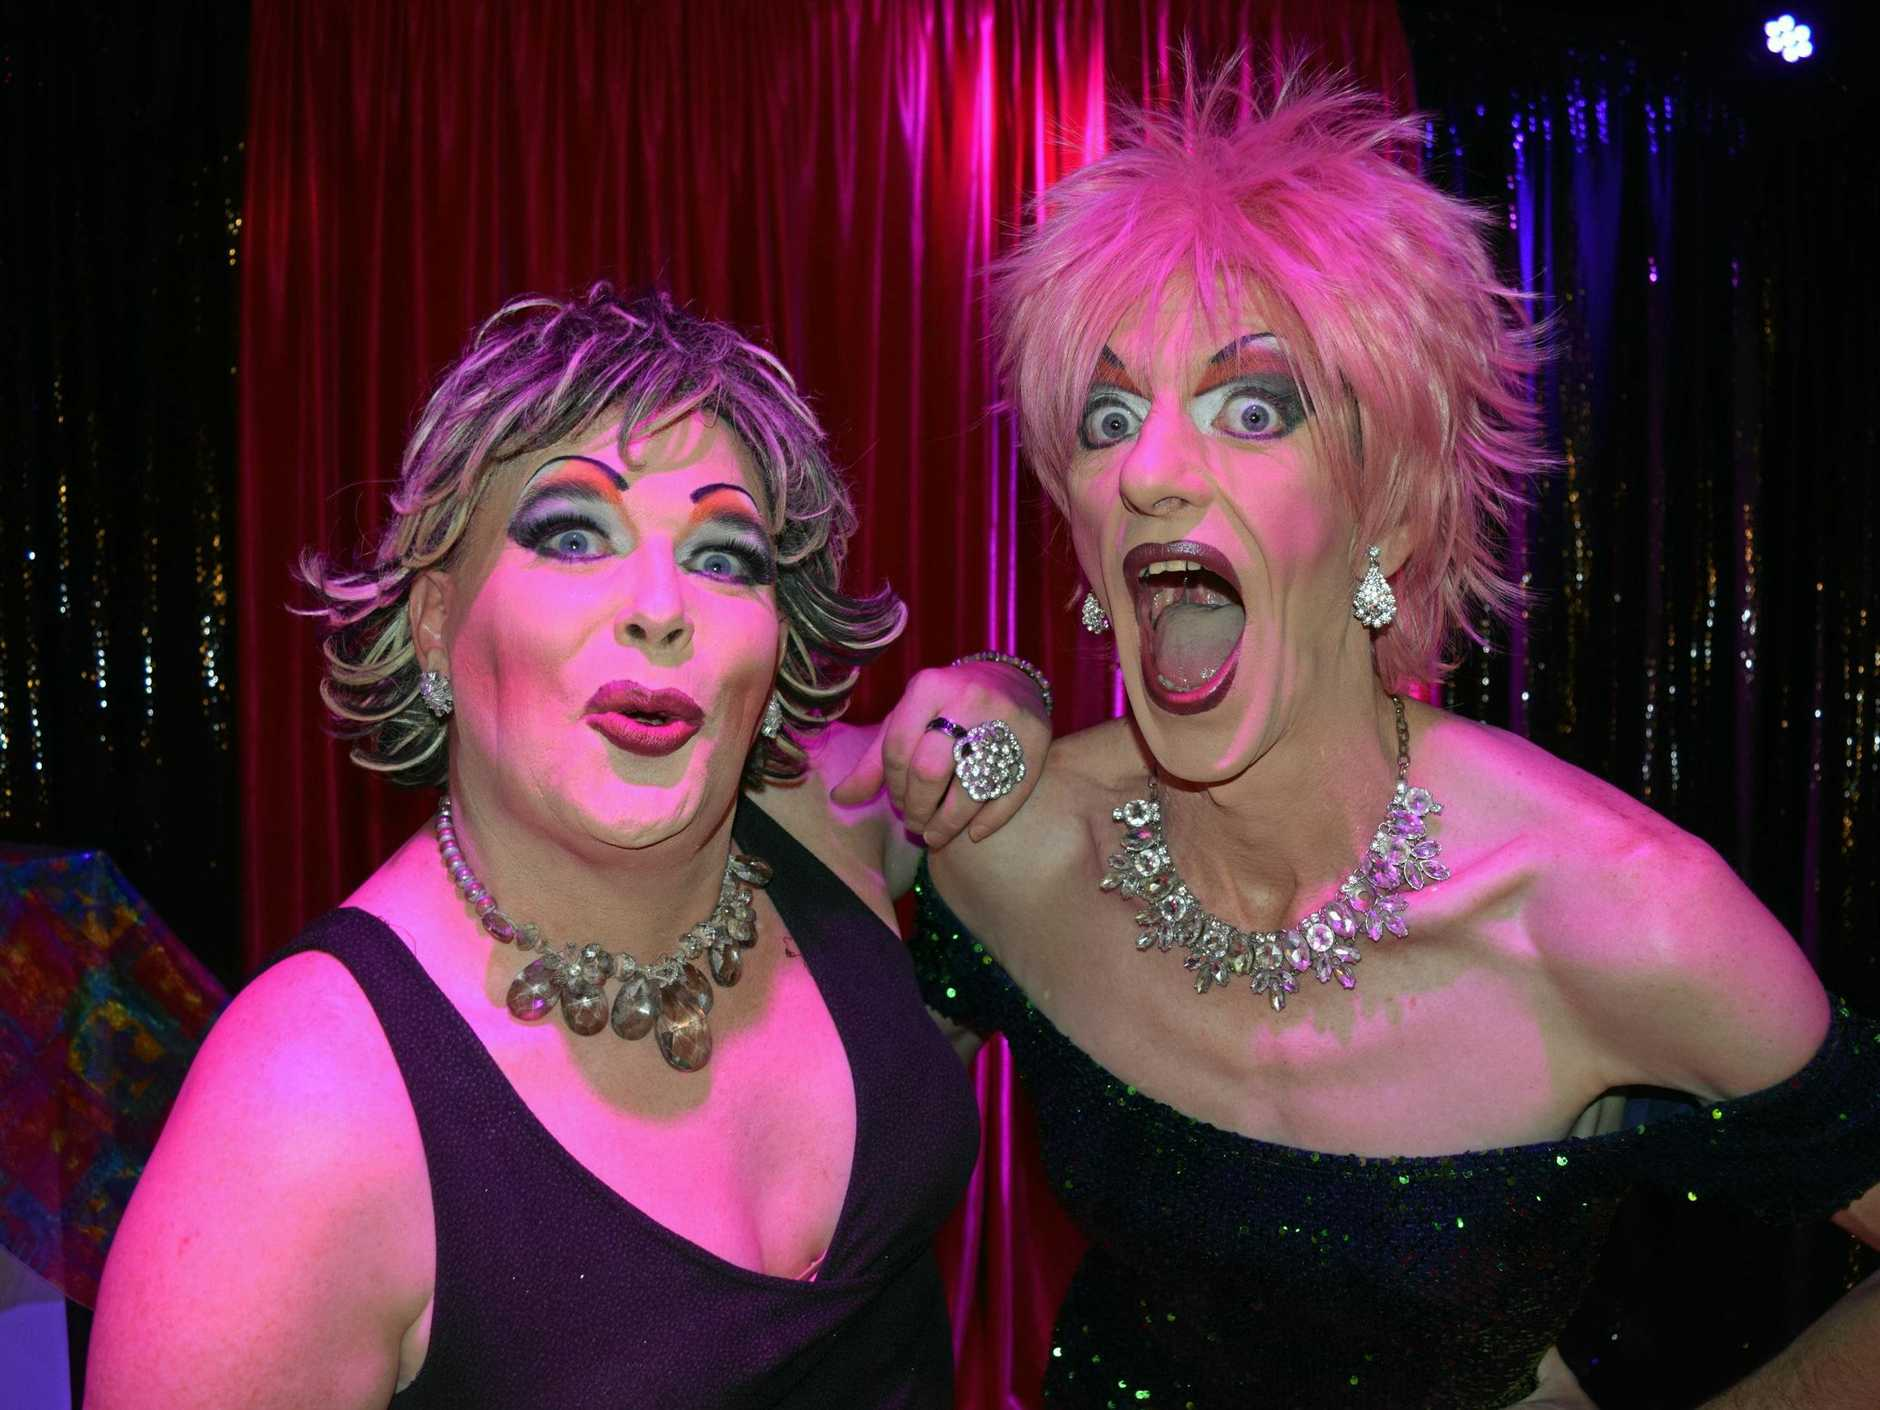 Sal Monalla and Melony Brests brought the house down at the Majestic Theatre Drag Queen Bingo on Friday night.